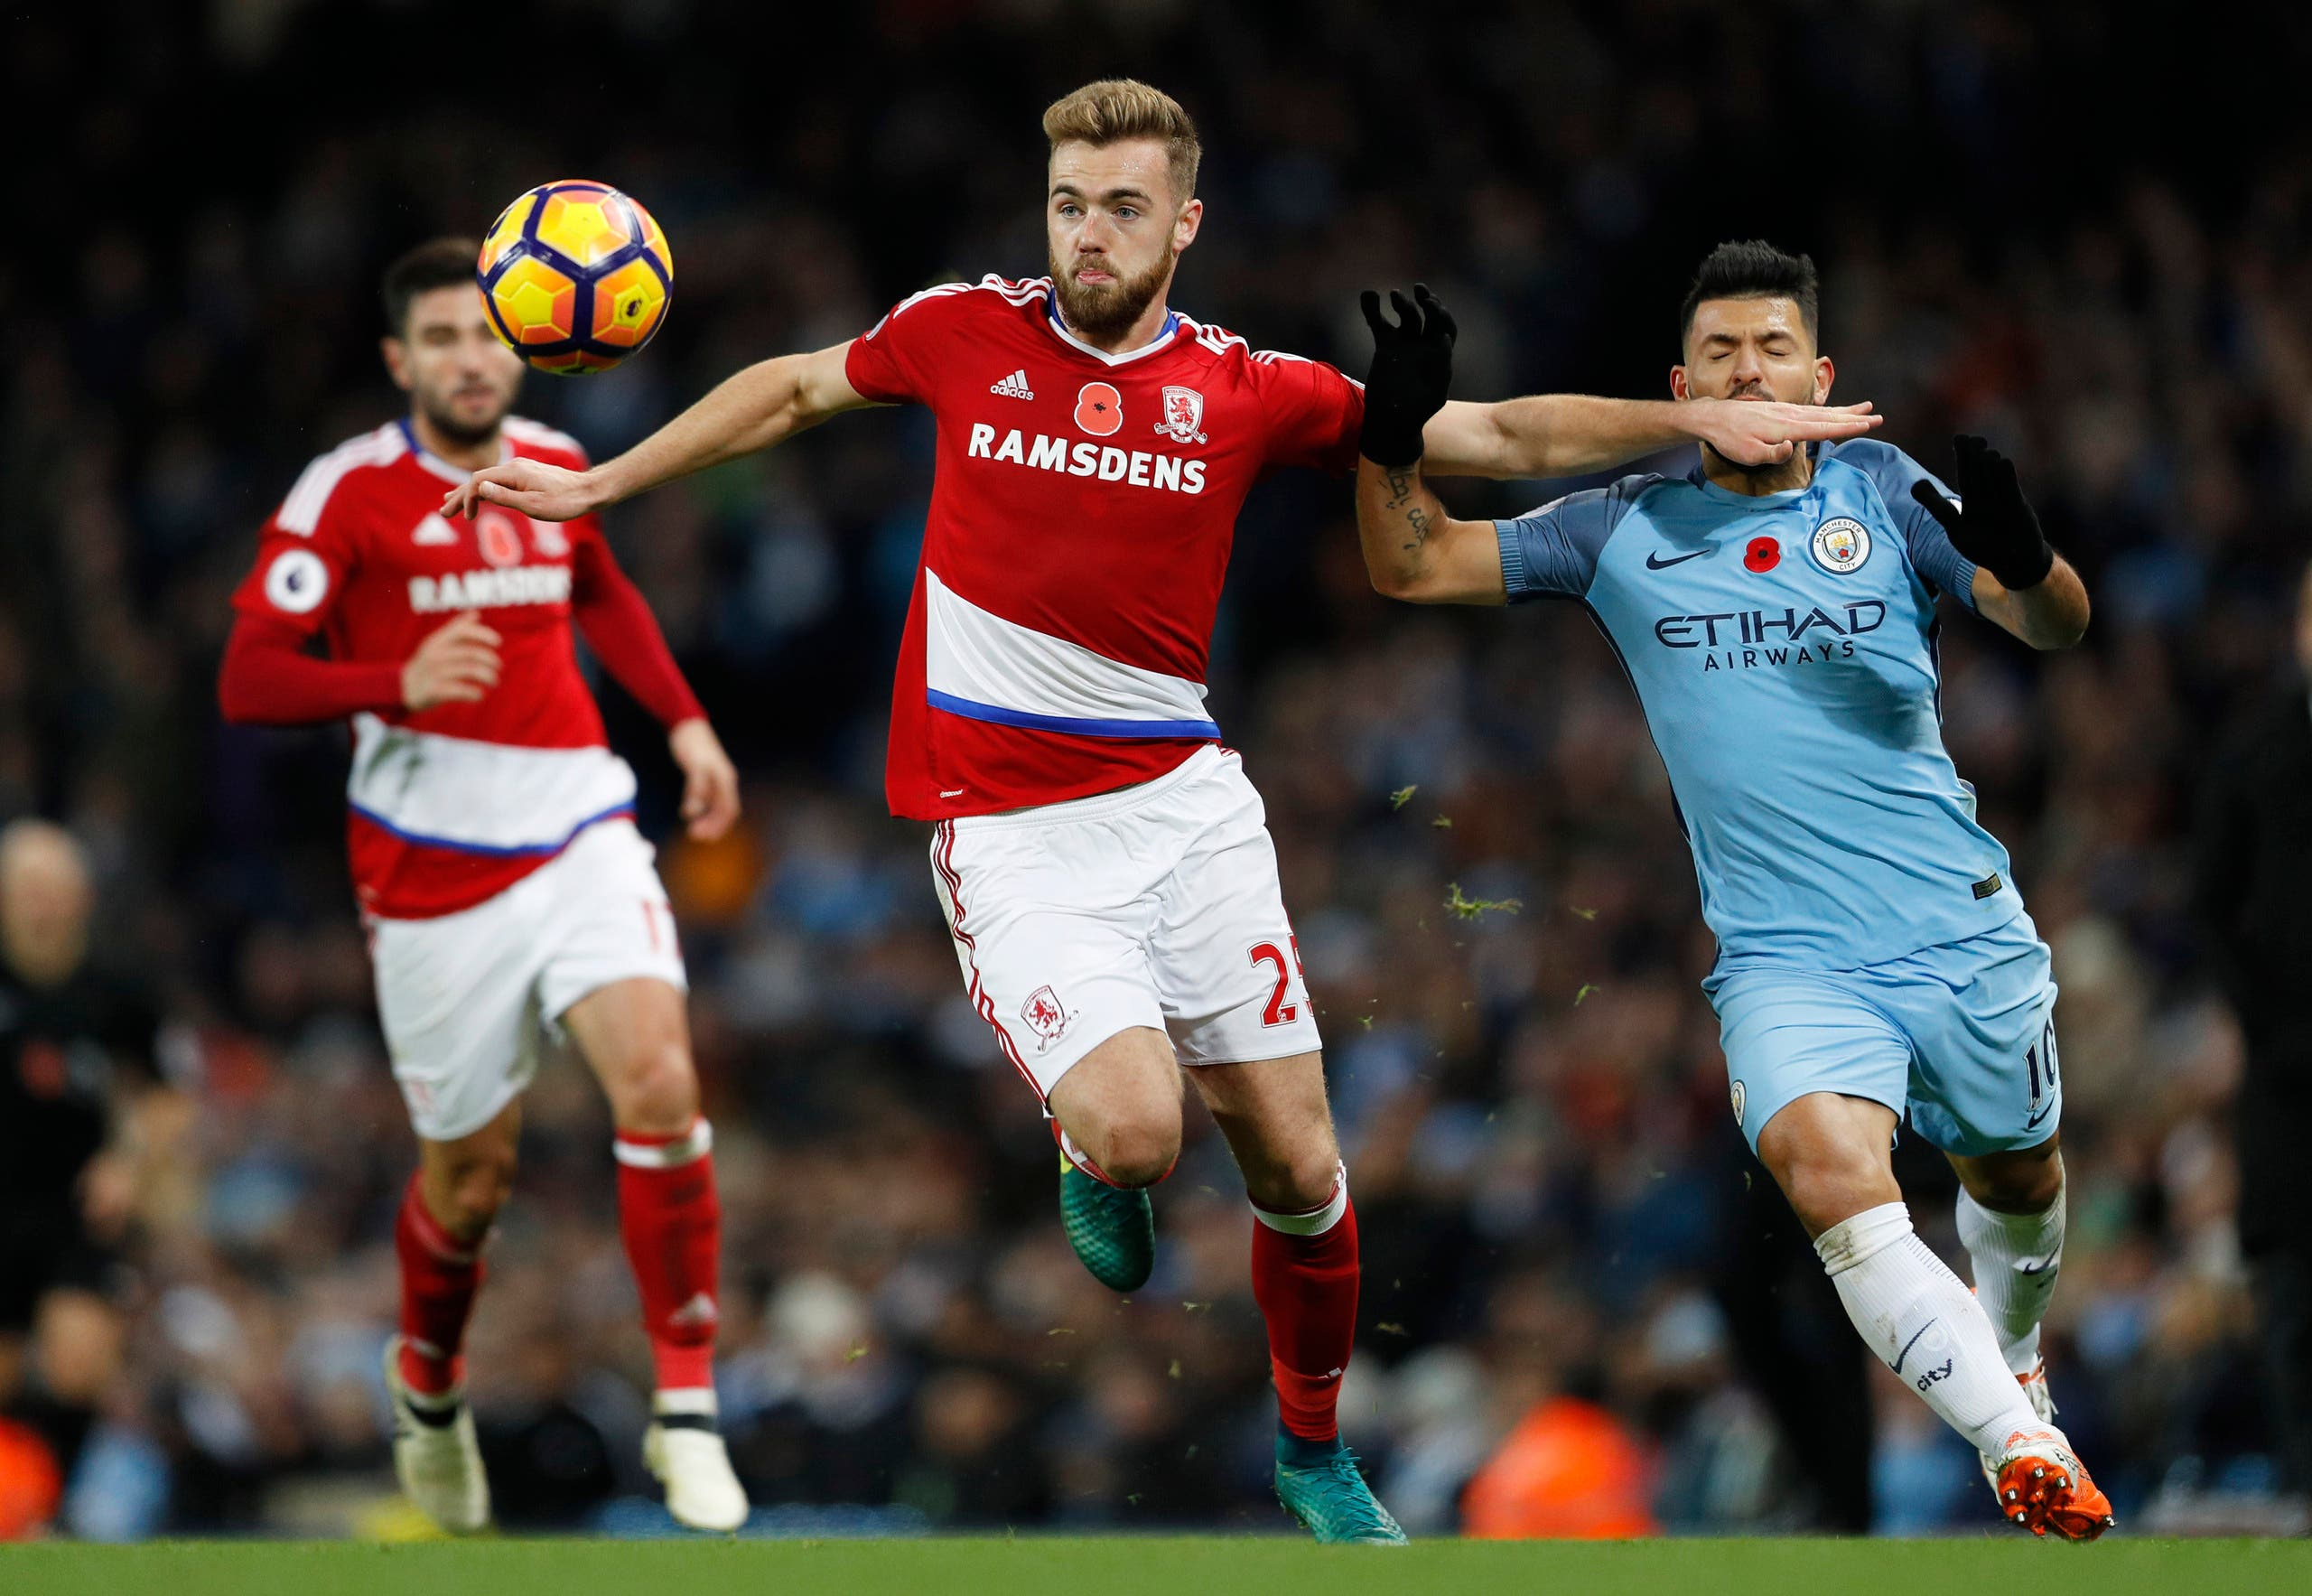 Middlesbrough's Calum Chambers in action with Manchester City's Sergio Aguero (Reuters)